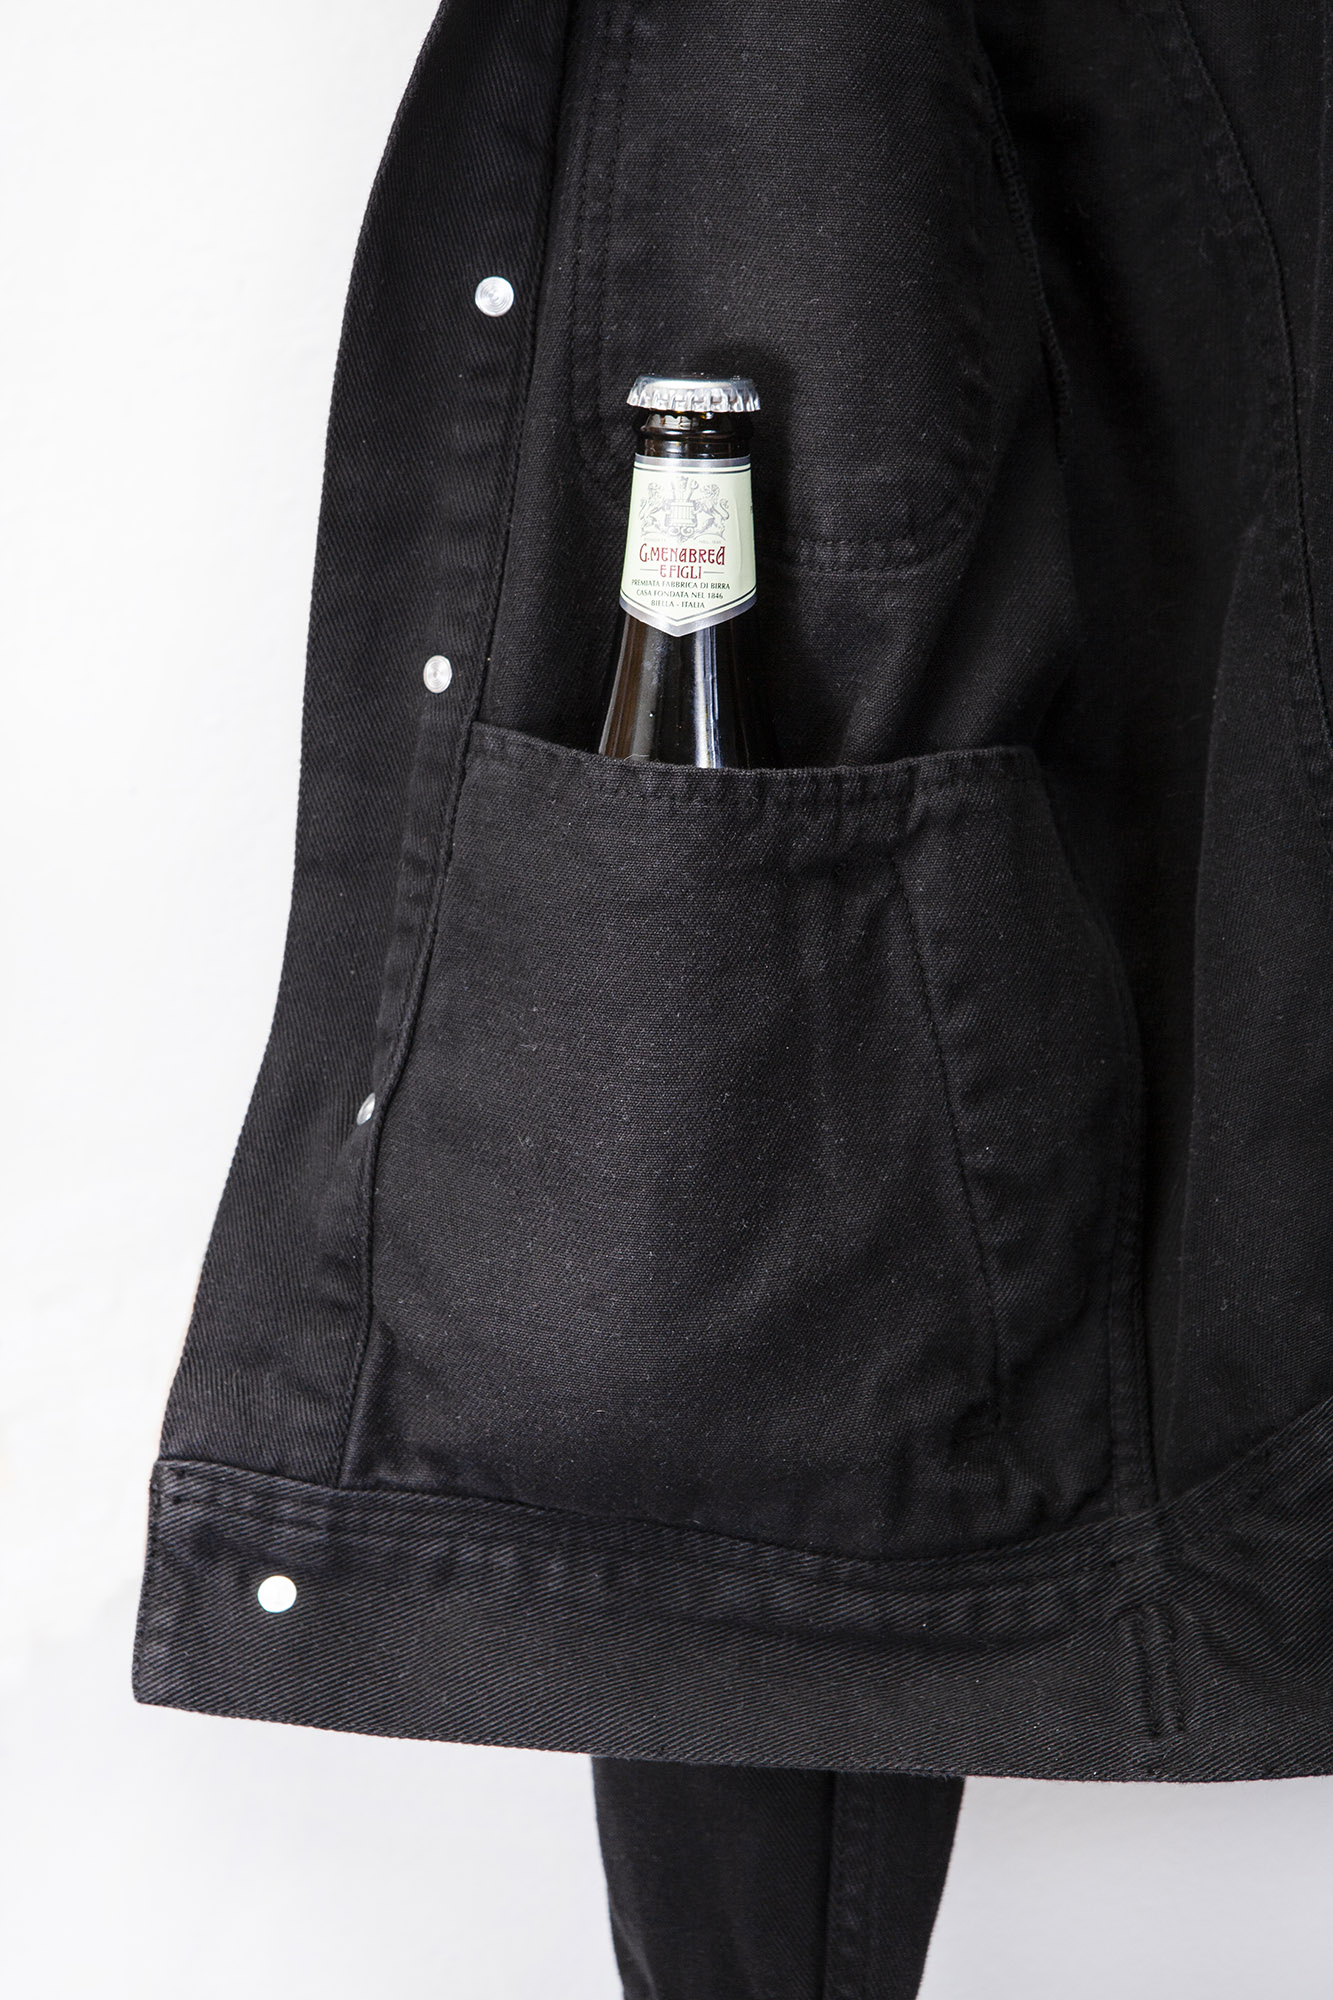 shangri-la-heritage-single-rider-black-canvas-jacket-still-life-inner-pocket